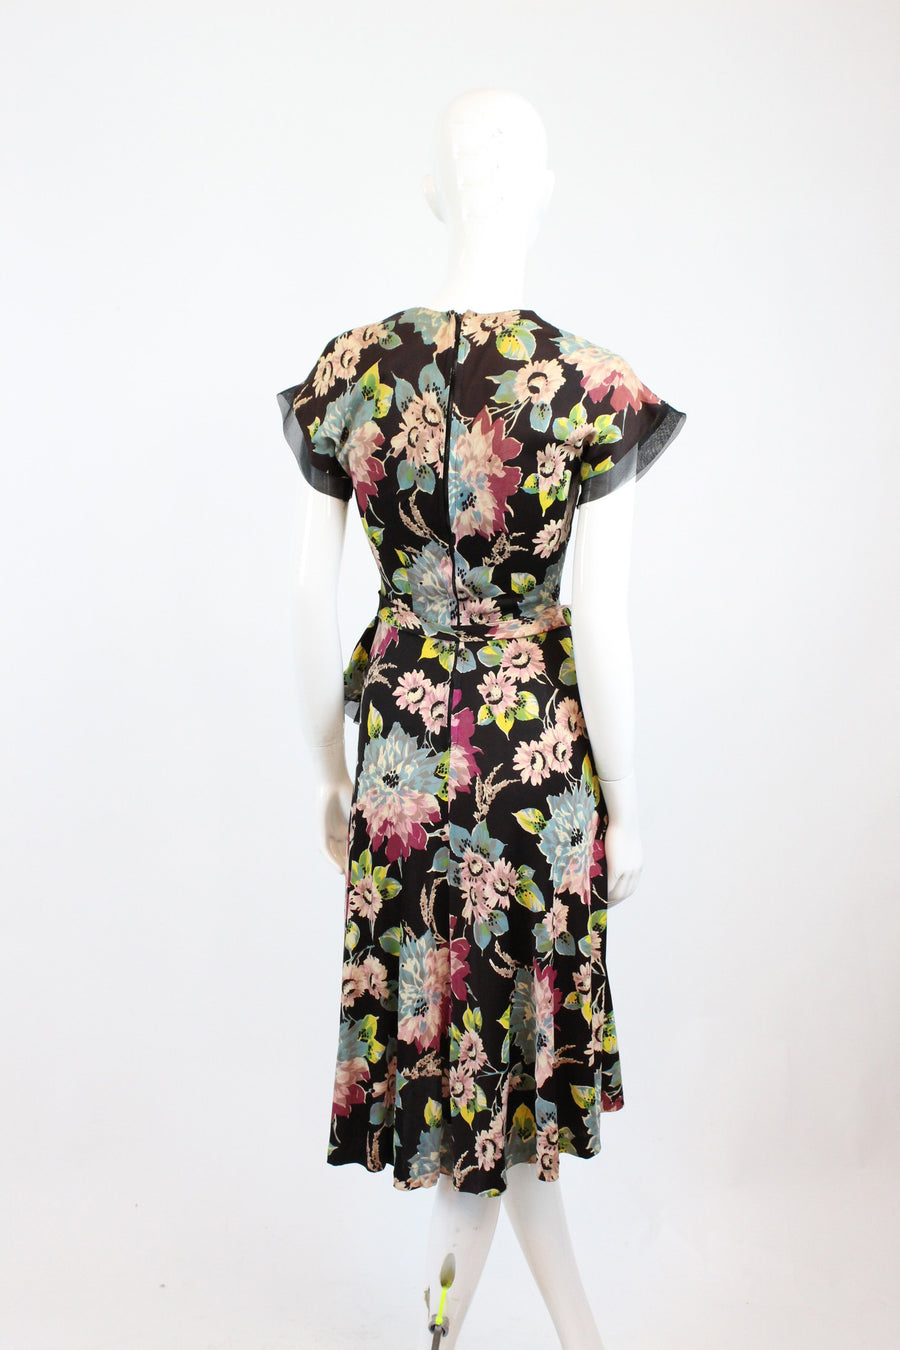 1940s rayon jersey floral dress XS | vintage sheer peplum dress